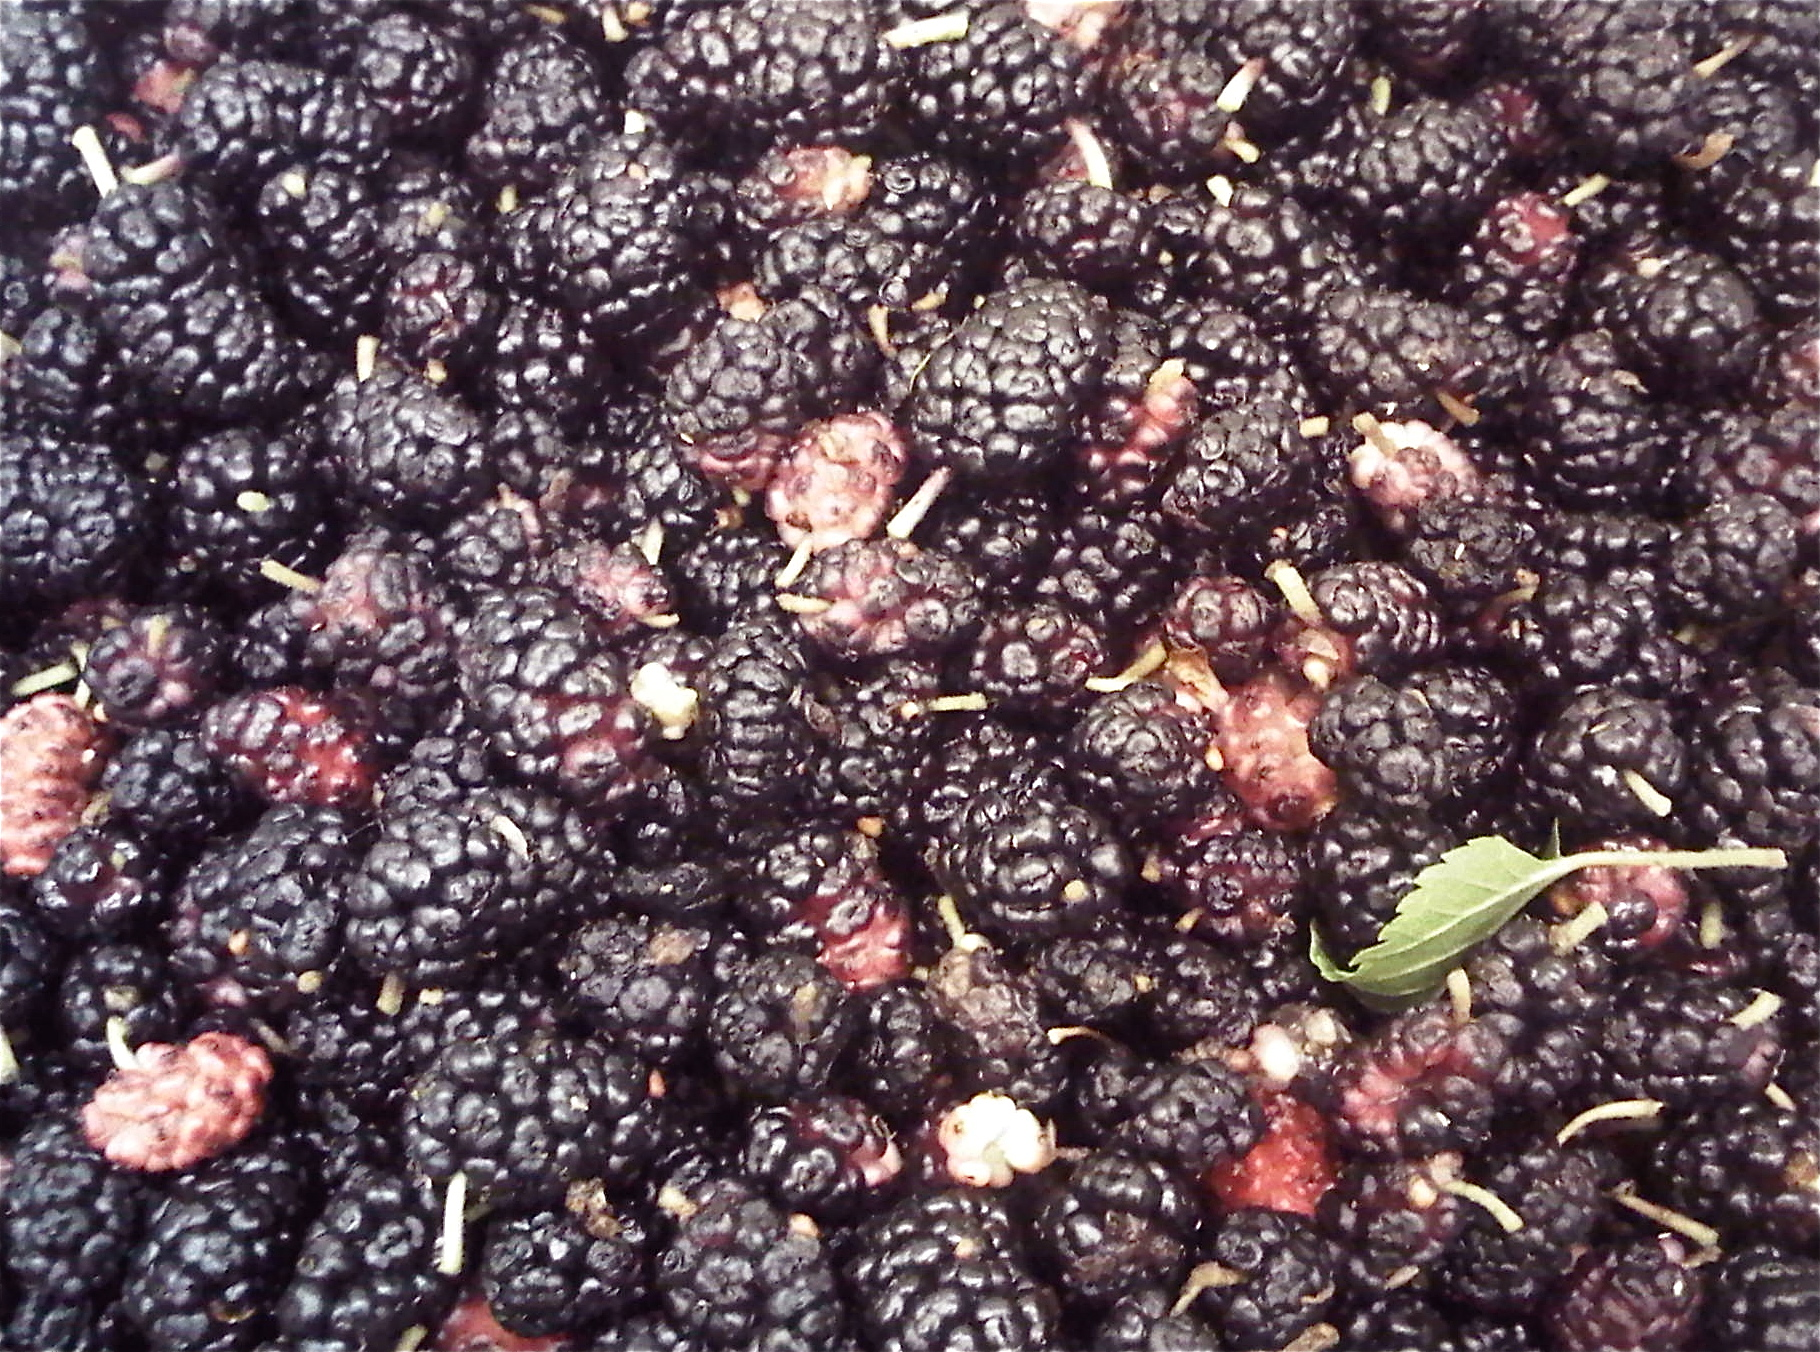 This is a photo of mulberries